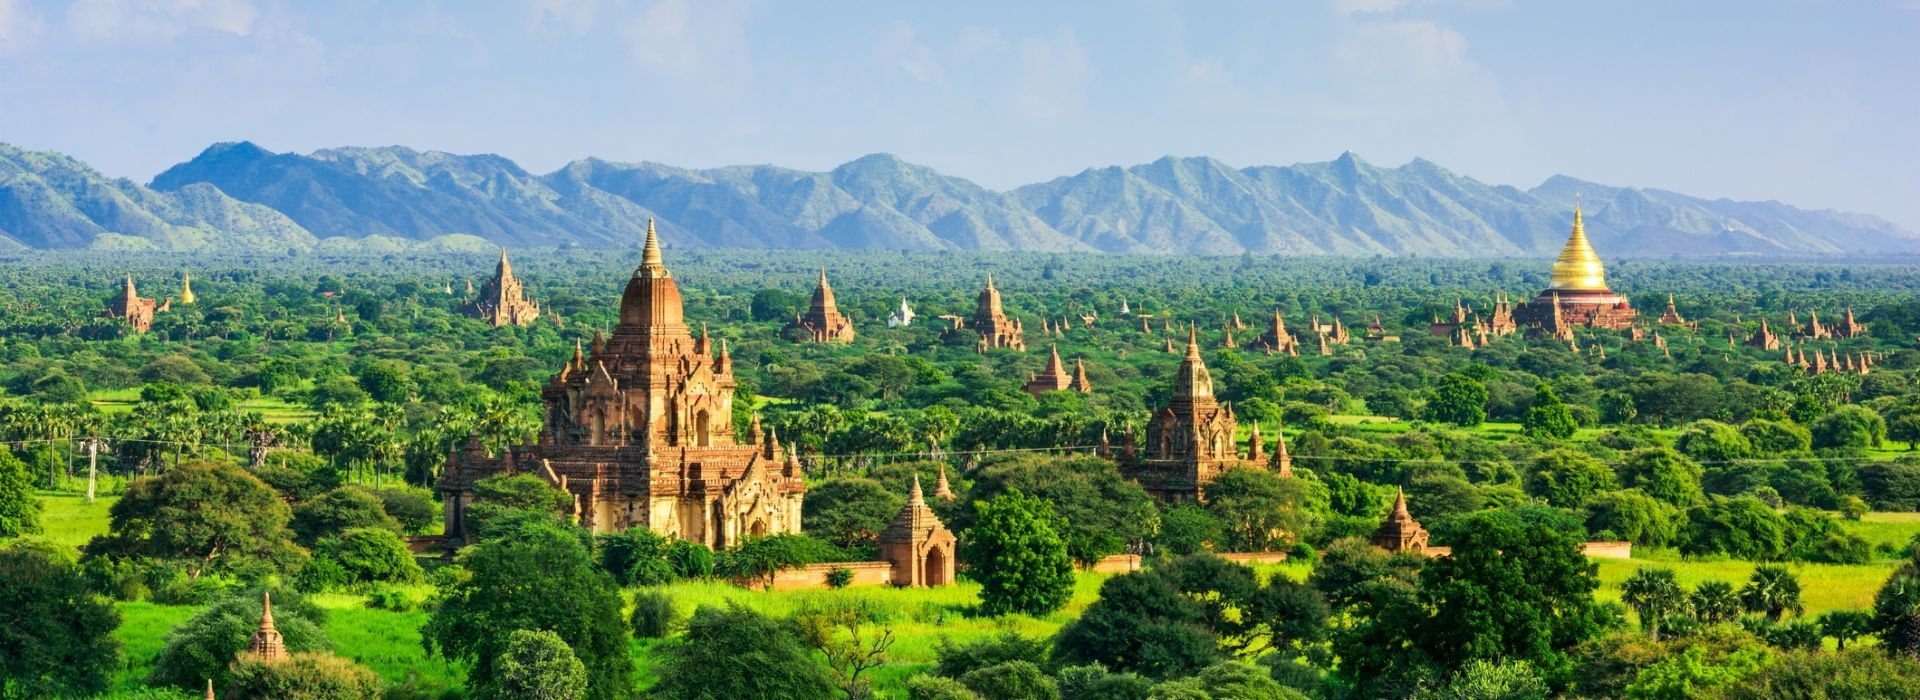 Wildlife, landscapes and nature Tours in Bagan